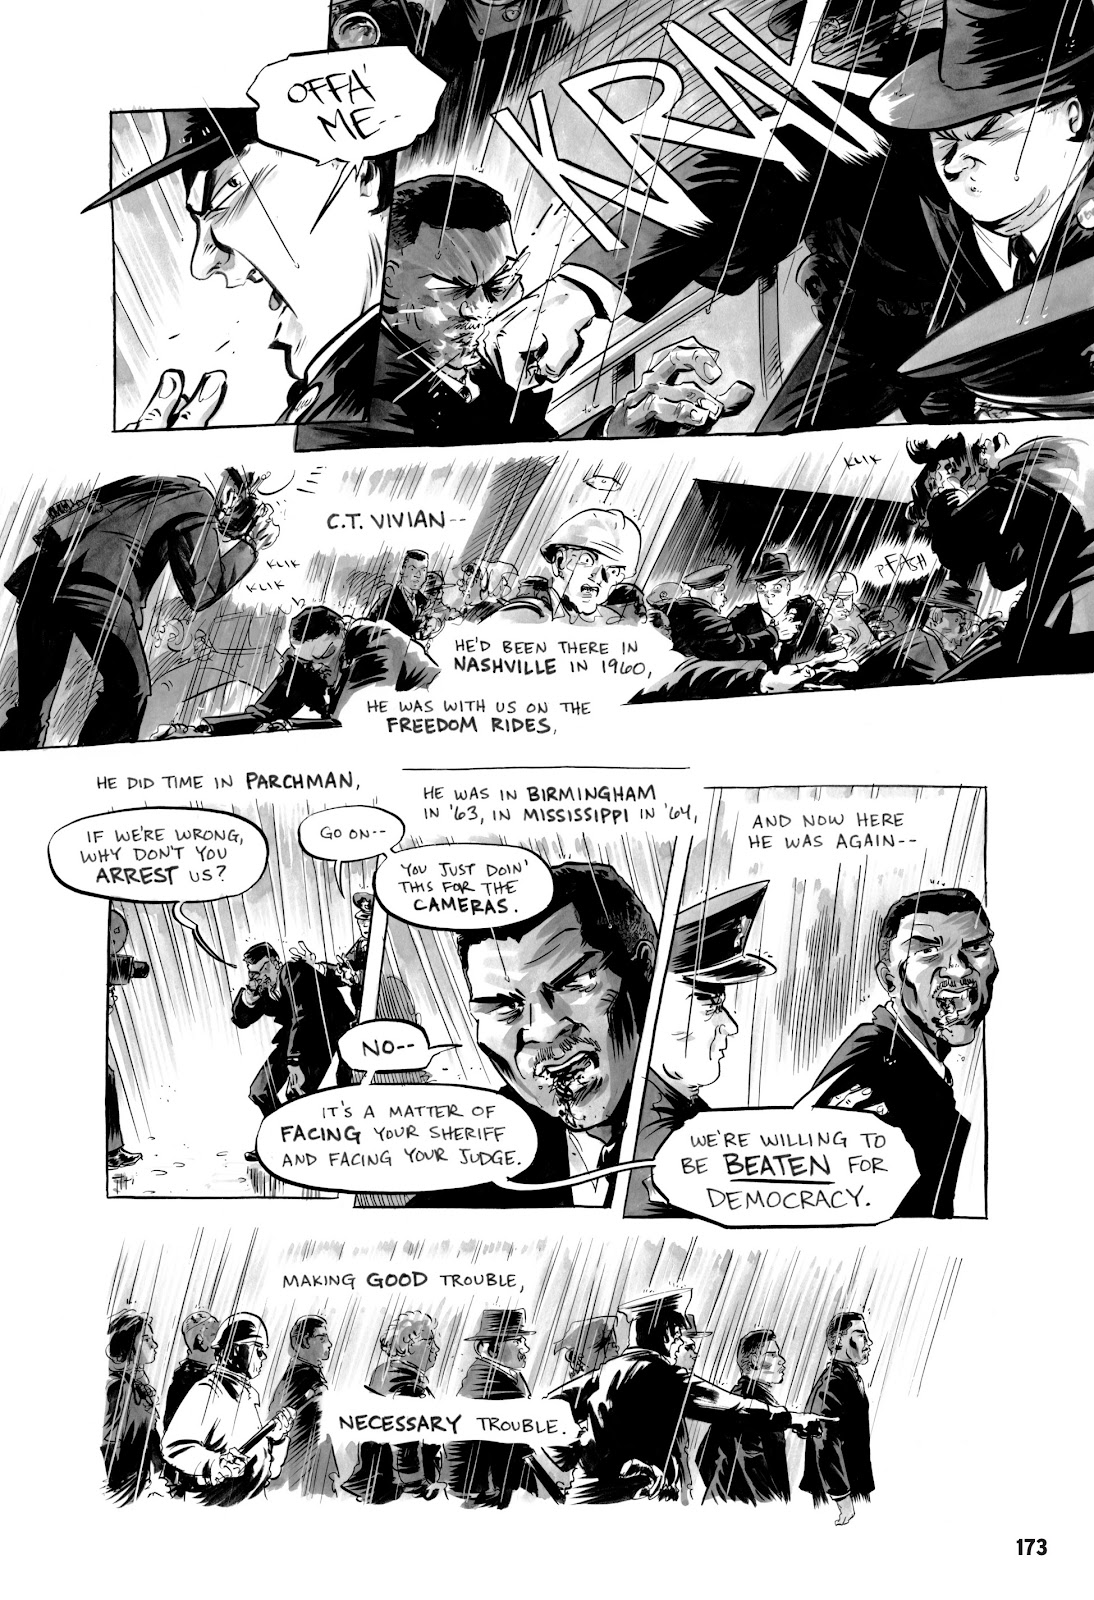 March 3 Page 167